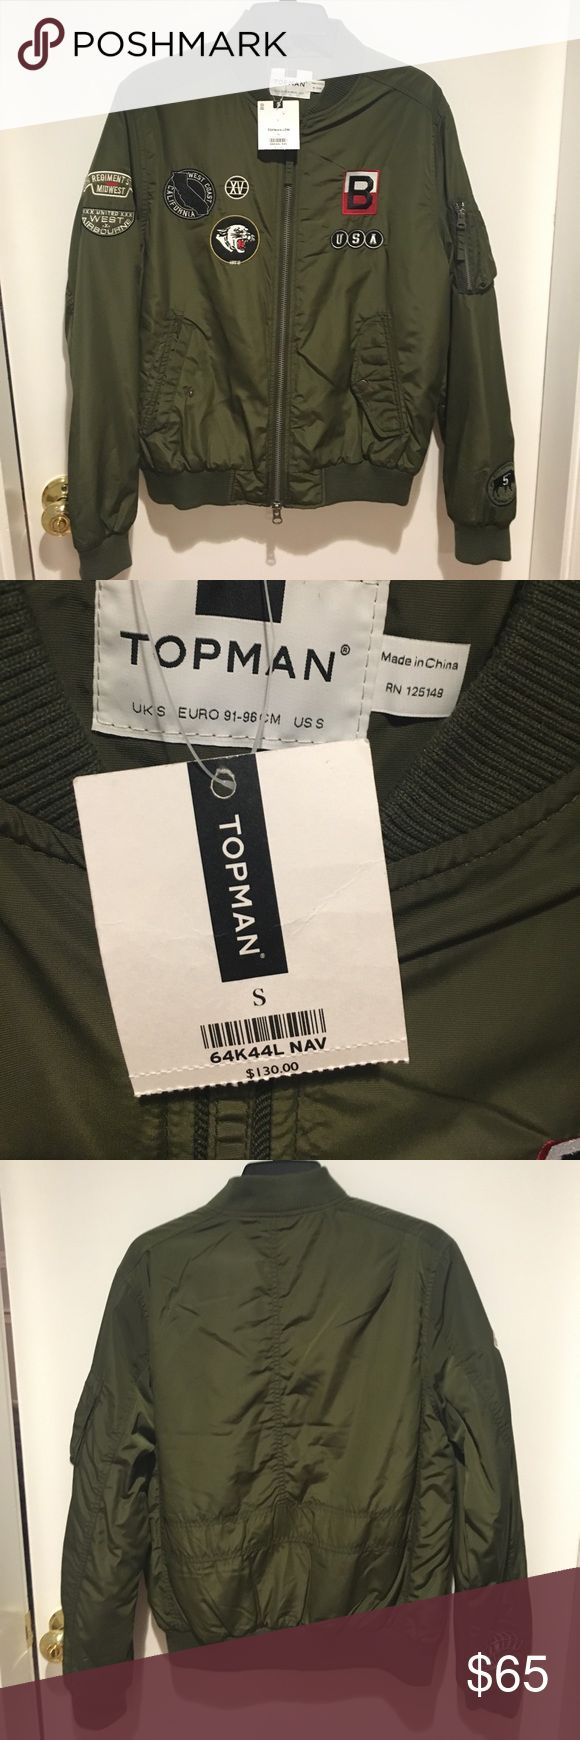 Topman Bomber Jacket Military green light weight Bomber Jacket with California inspired vintage looking patches. Never worn and with tags! Topman Jackets & Coats Bomber & Varsity